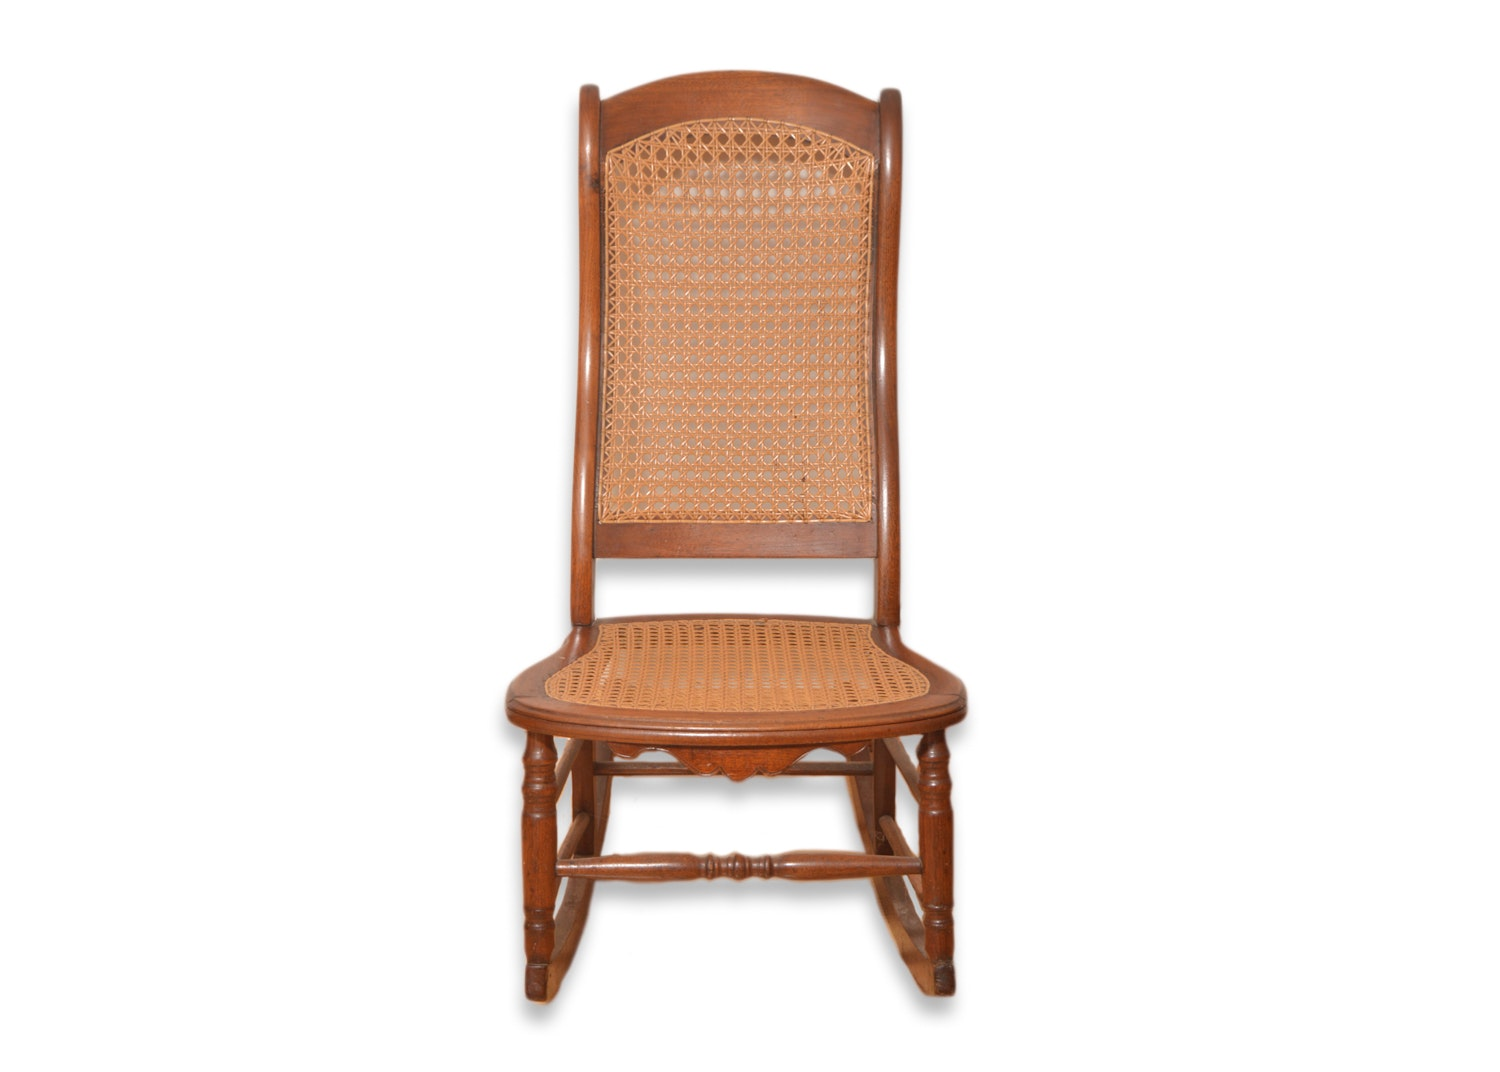 Vintage Victorian Style Caned Rocking Chair